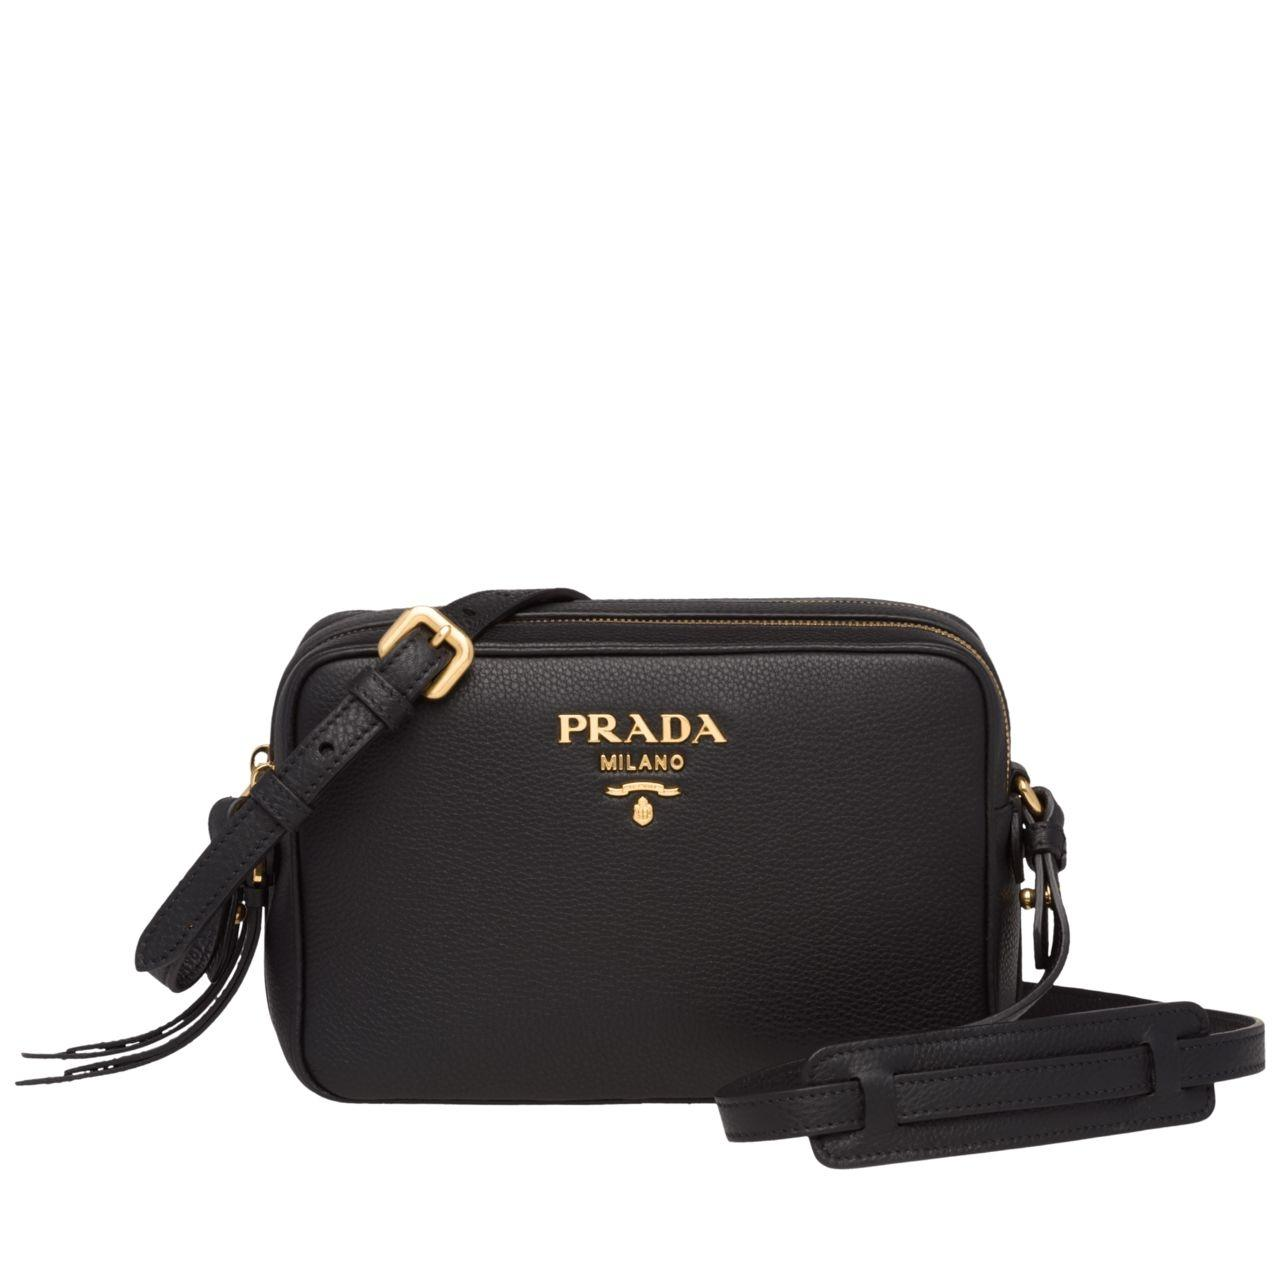 b4a622018033 Prada Bags for Women Philippines - Prada Womens Bags for sale - prices    reviews